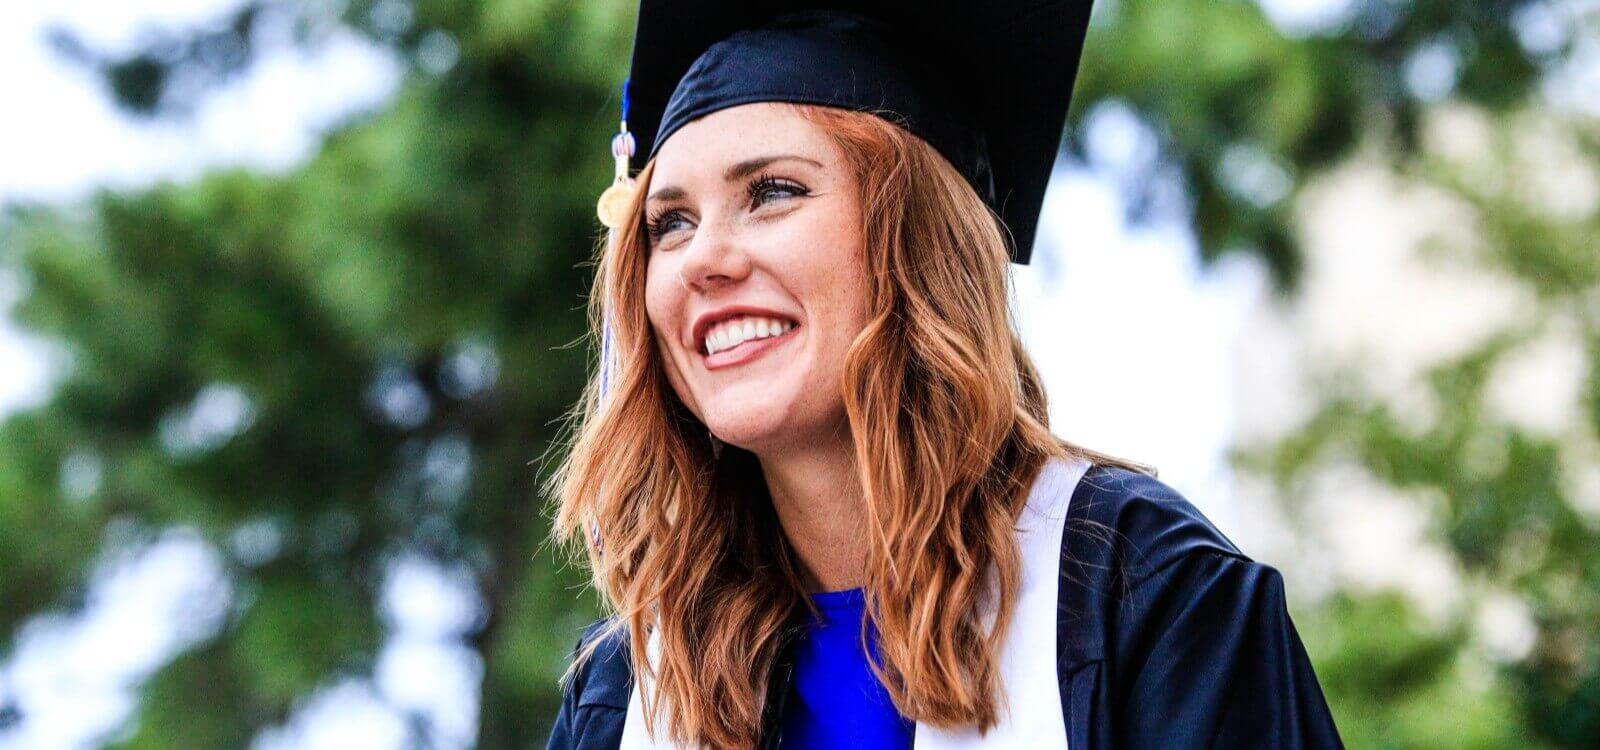 tips-to-prepping-for-after-graduation